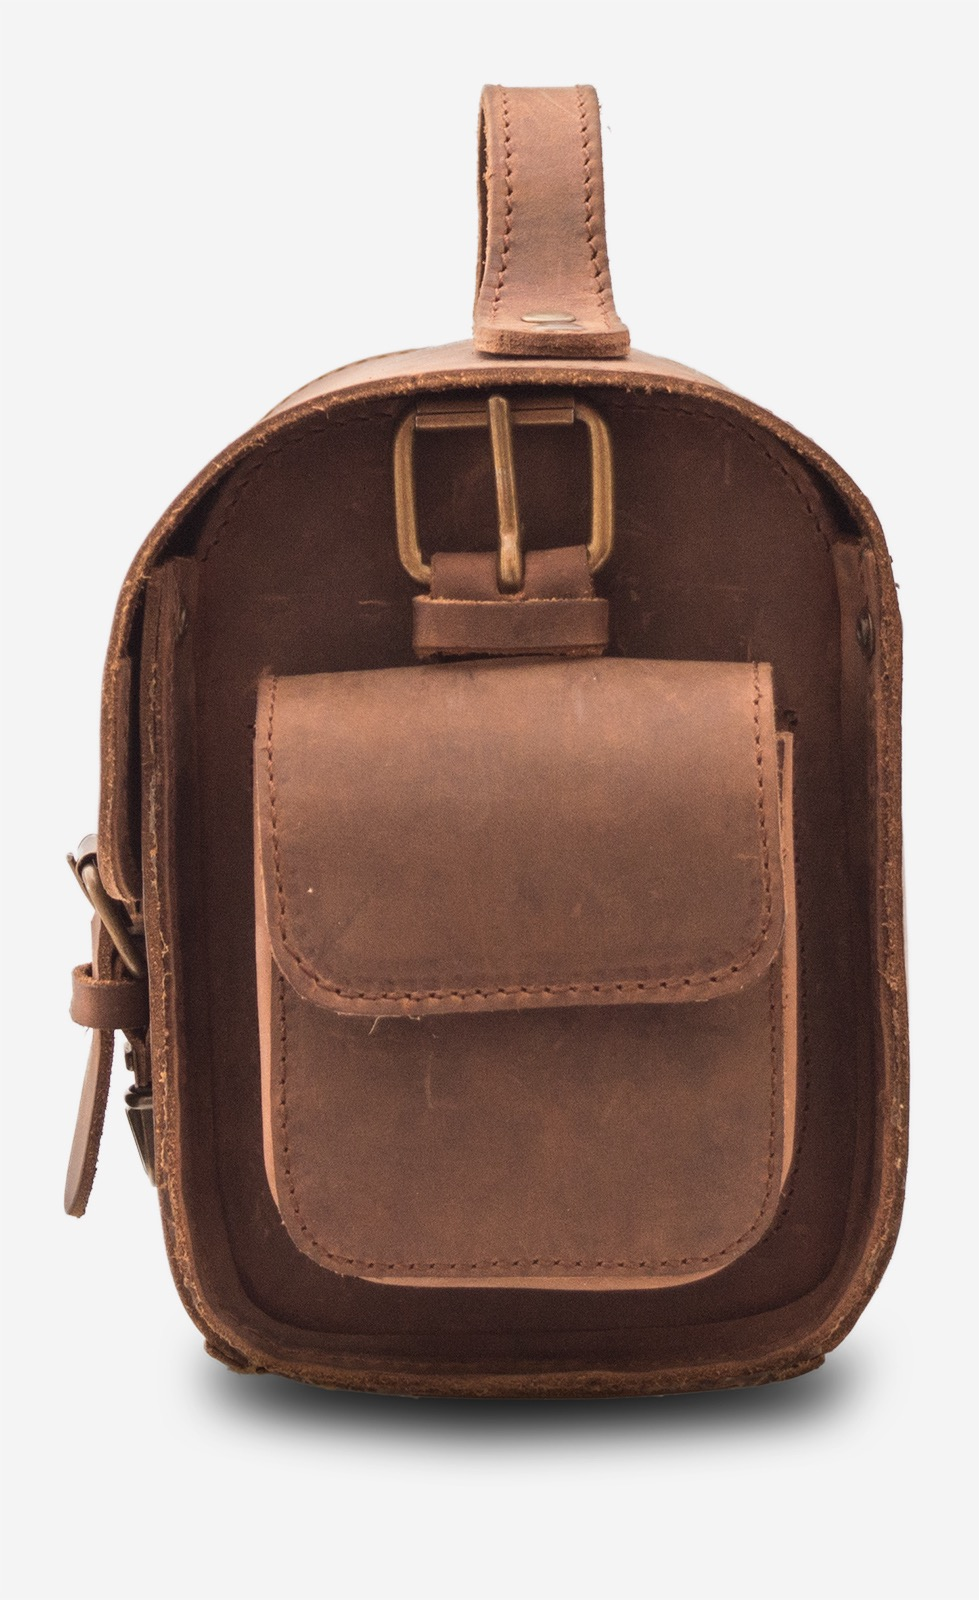 Side view of handmade brown leather camera bag 733104.